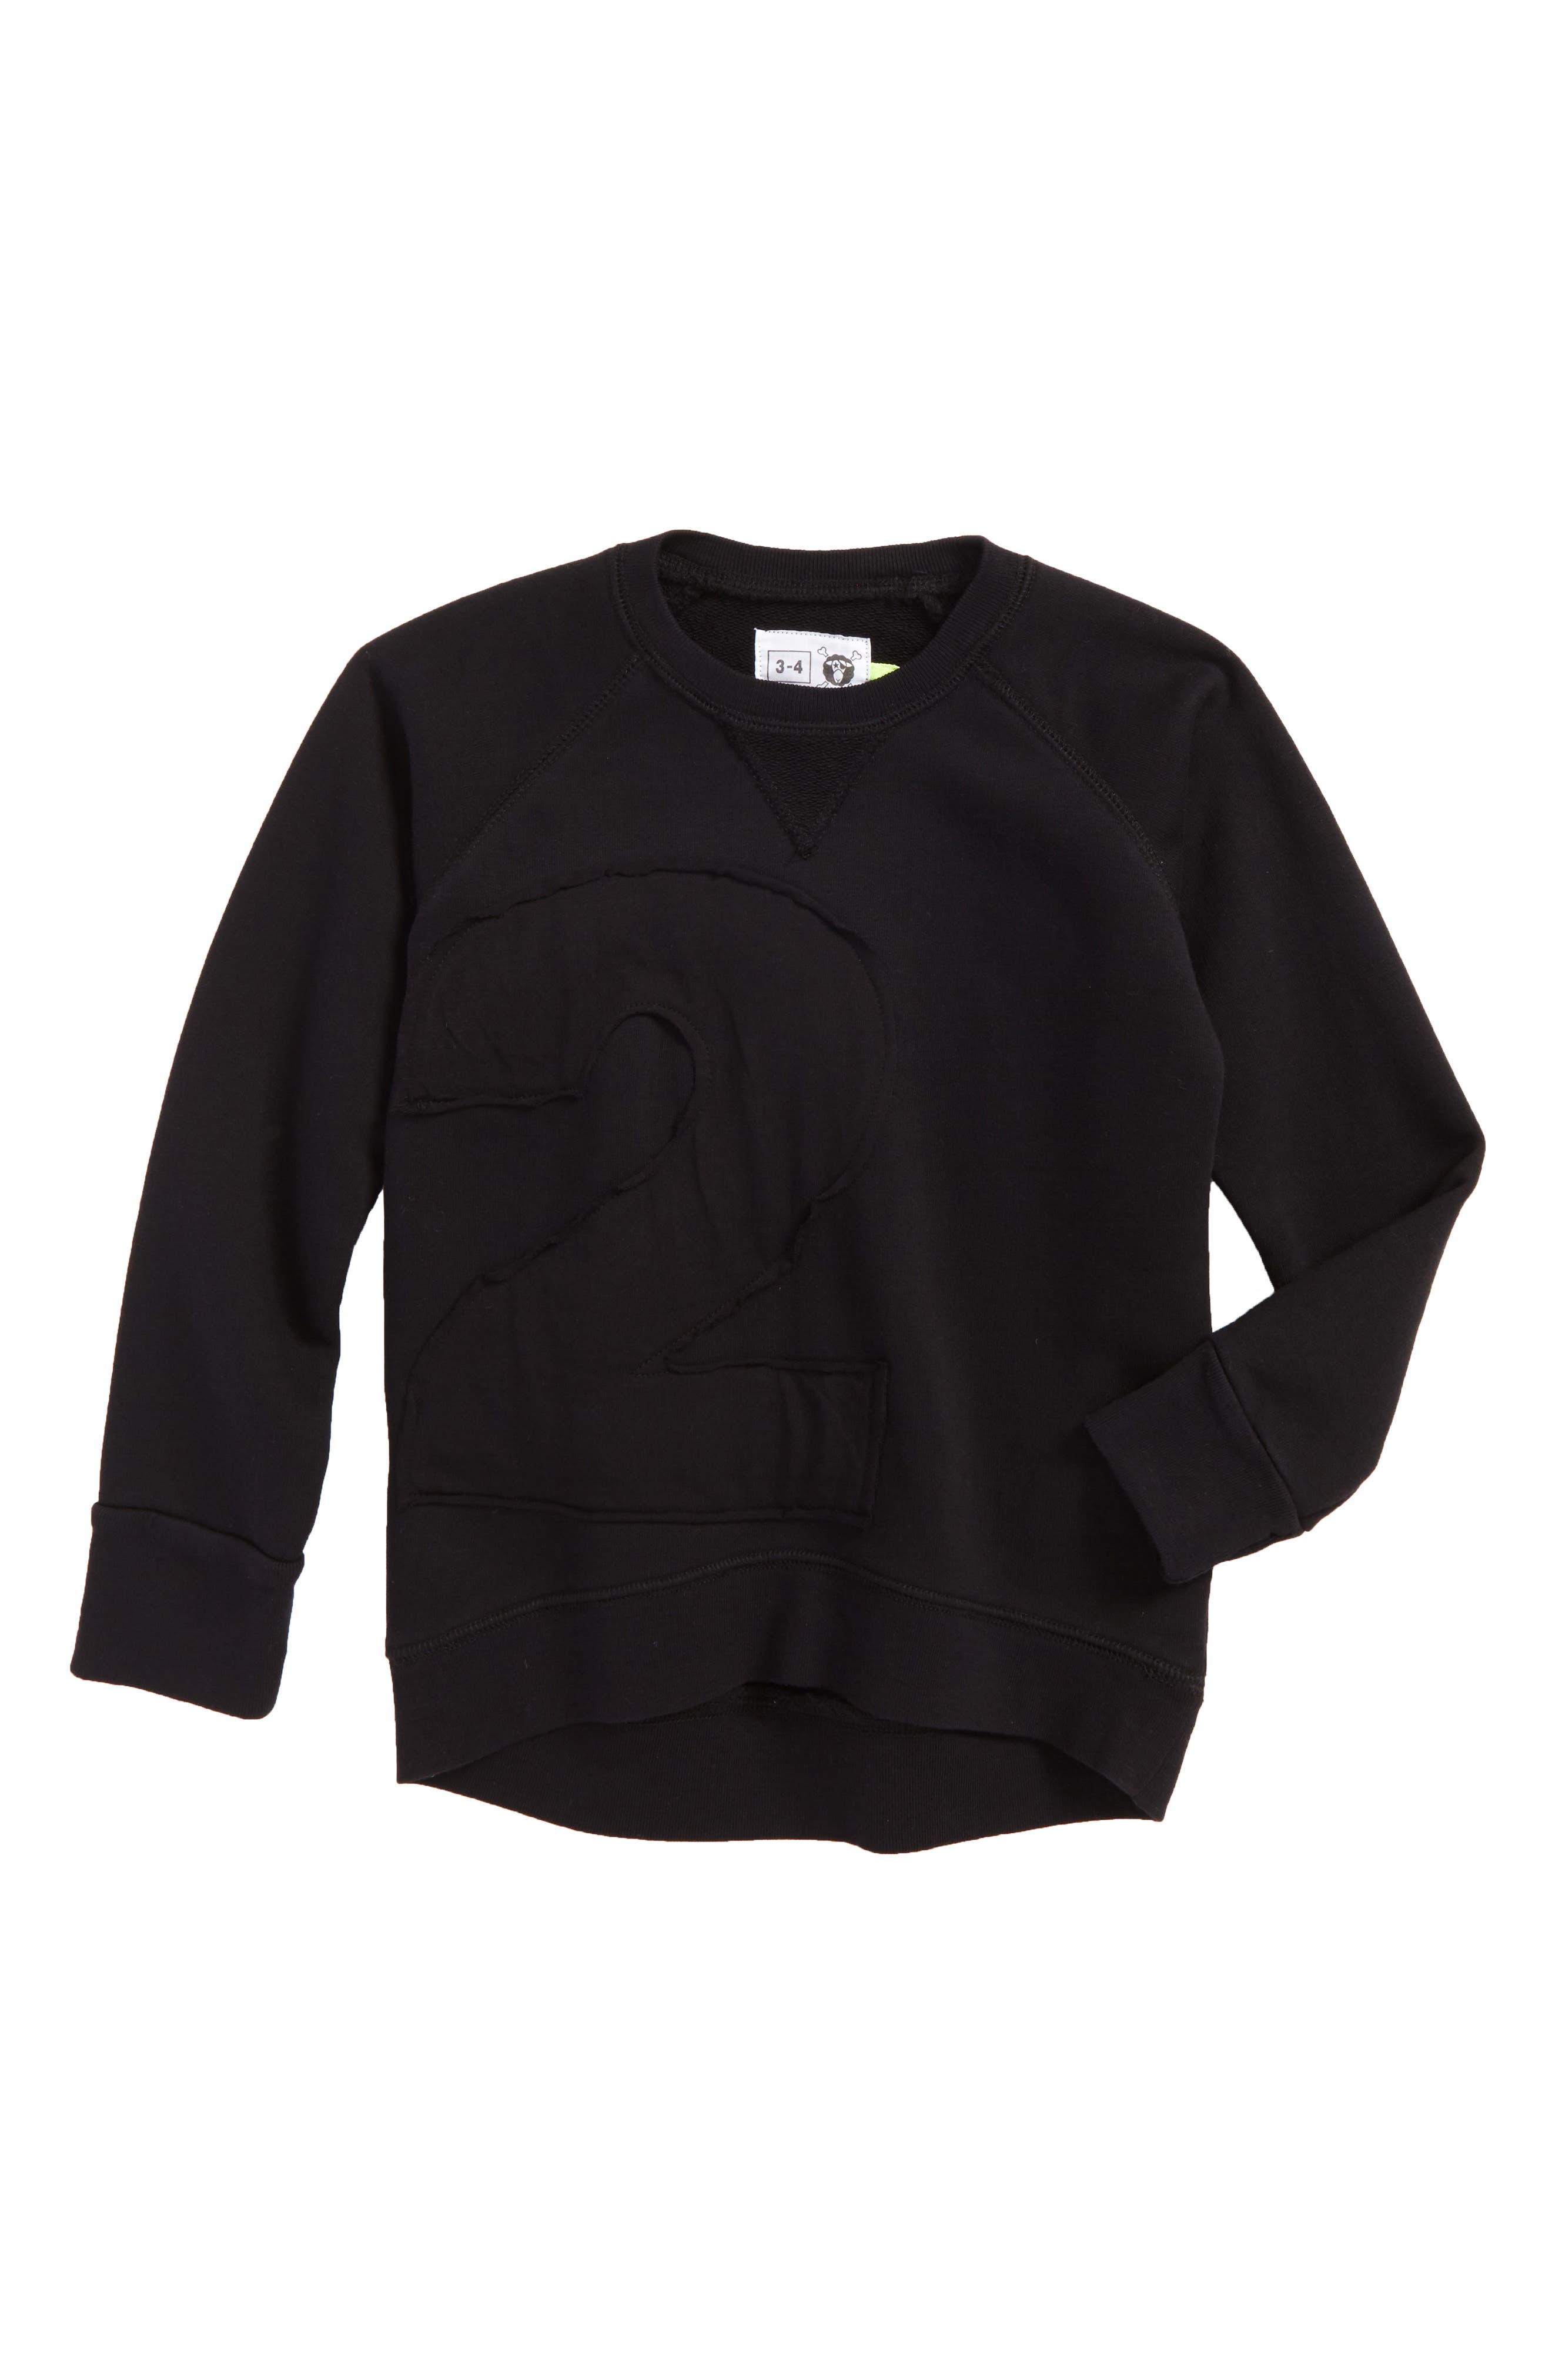 Puffy Number Sweatshirt,                         Main,                         color, Black